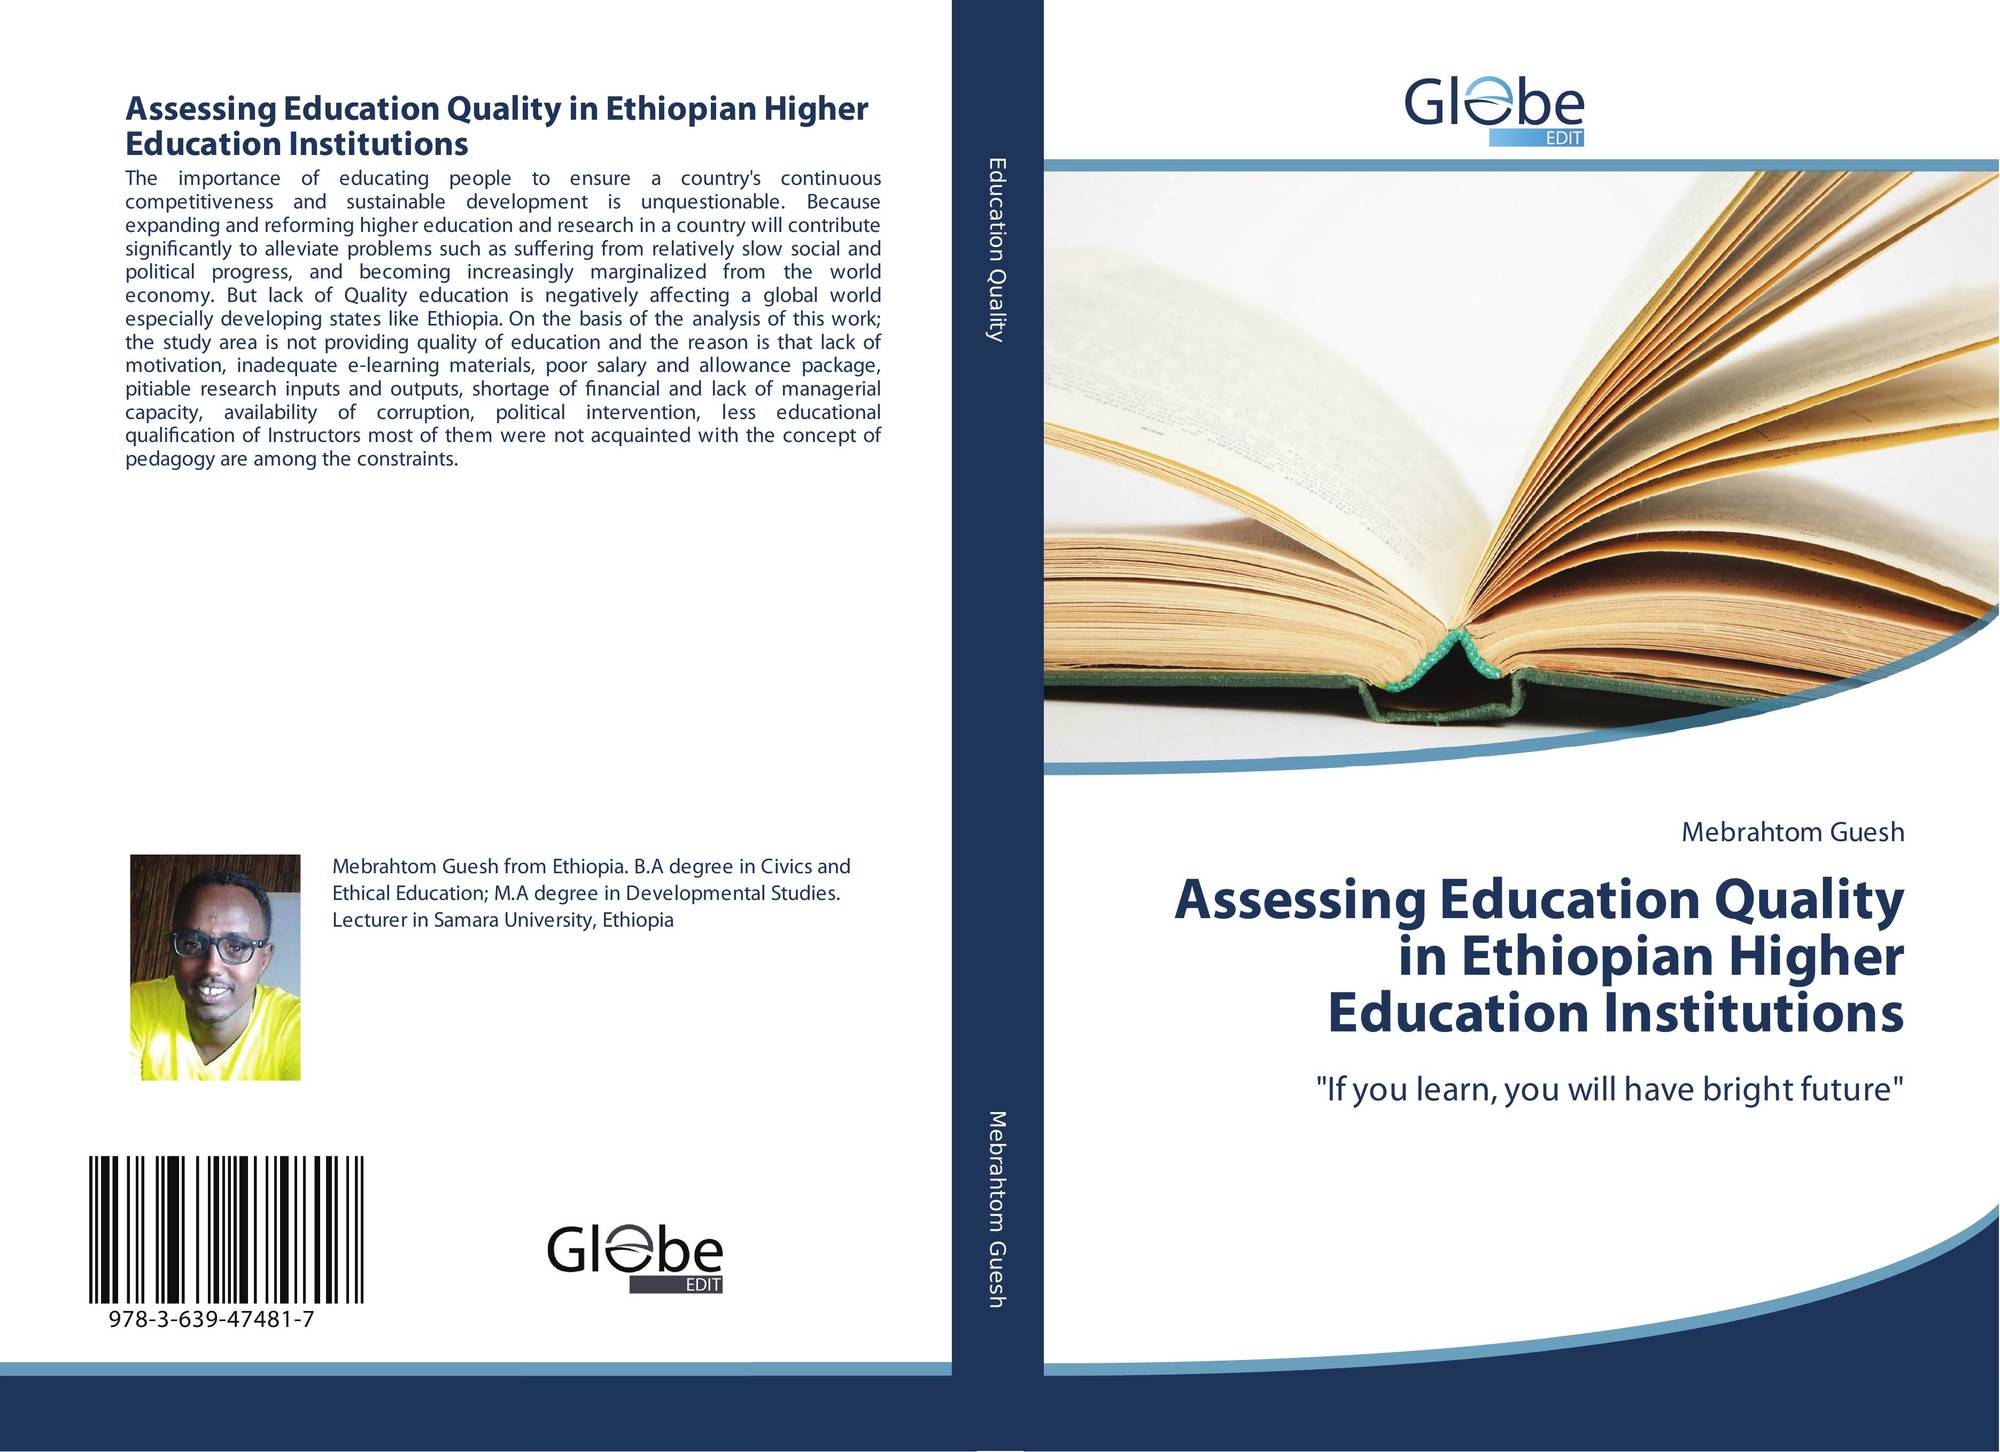 an analysis of the refurbishing of older institutes of education